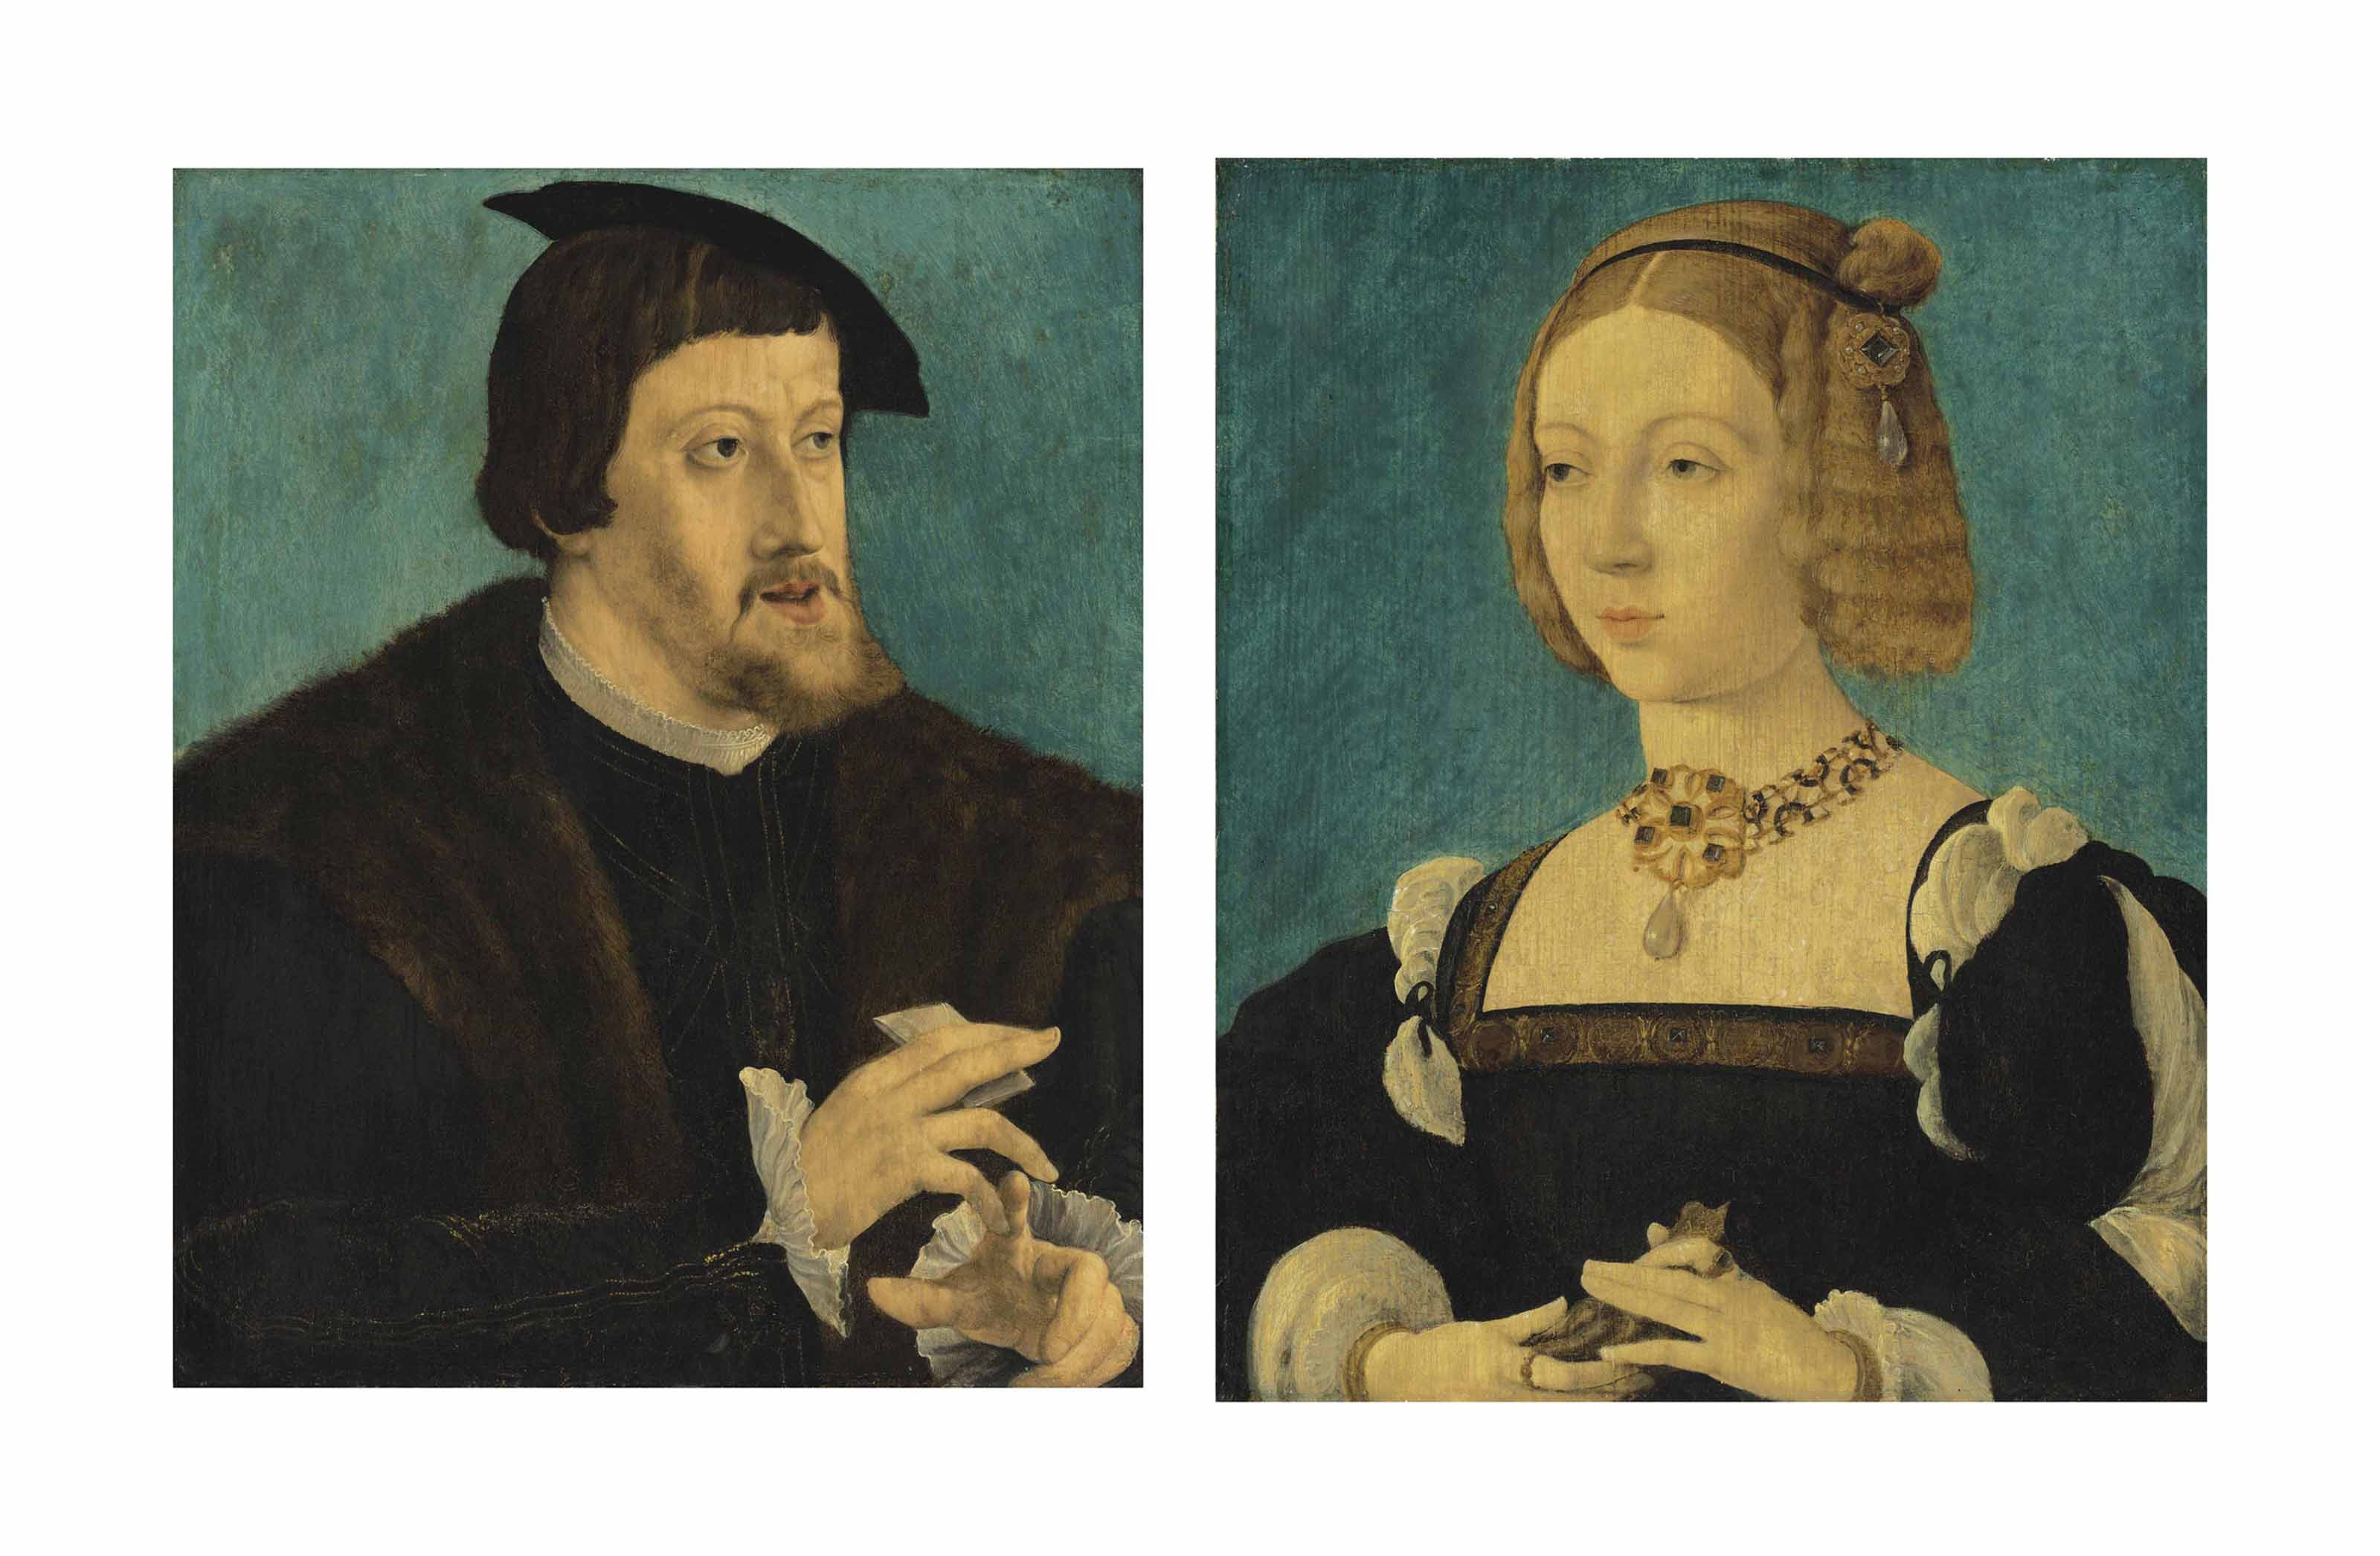 Portrait of the Charles V, Holy Roman Emperor (1500-1558); and Portrait of his wife, Isabella of Portugal (1503-1539)